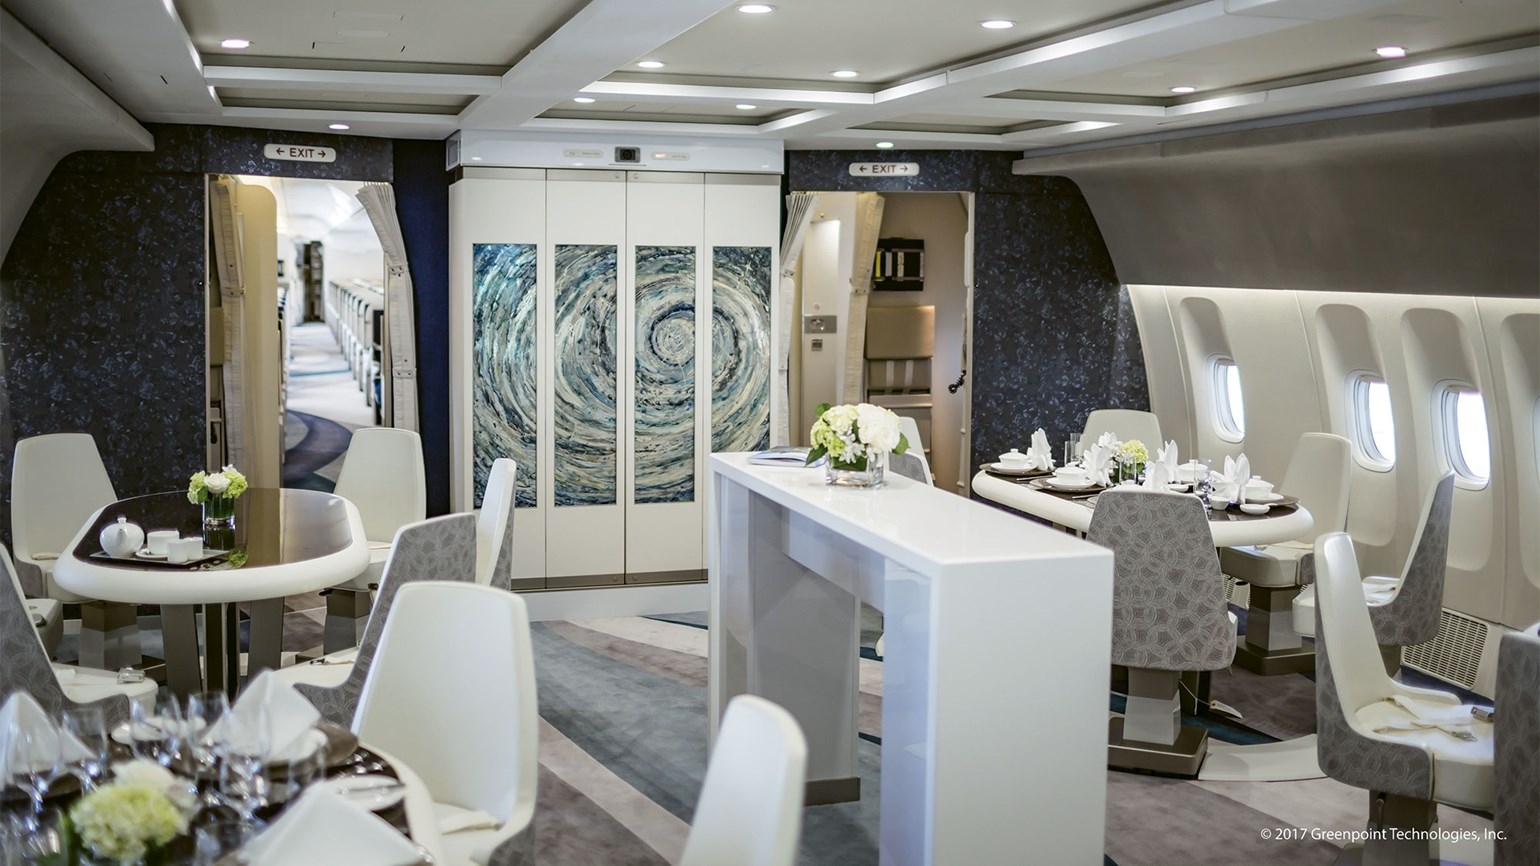 Crystal takes delivery of luxury Boeing 777